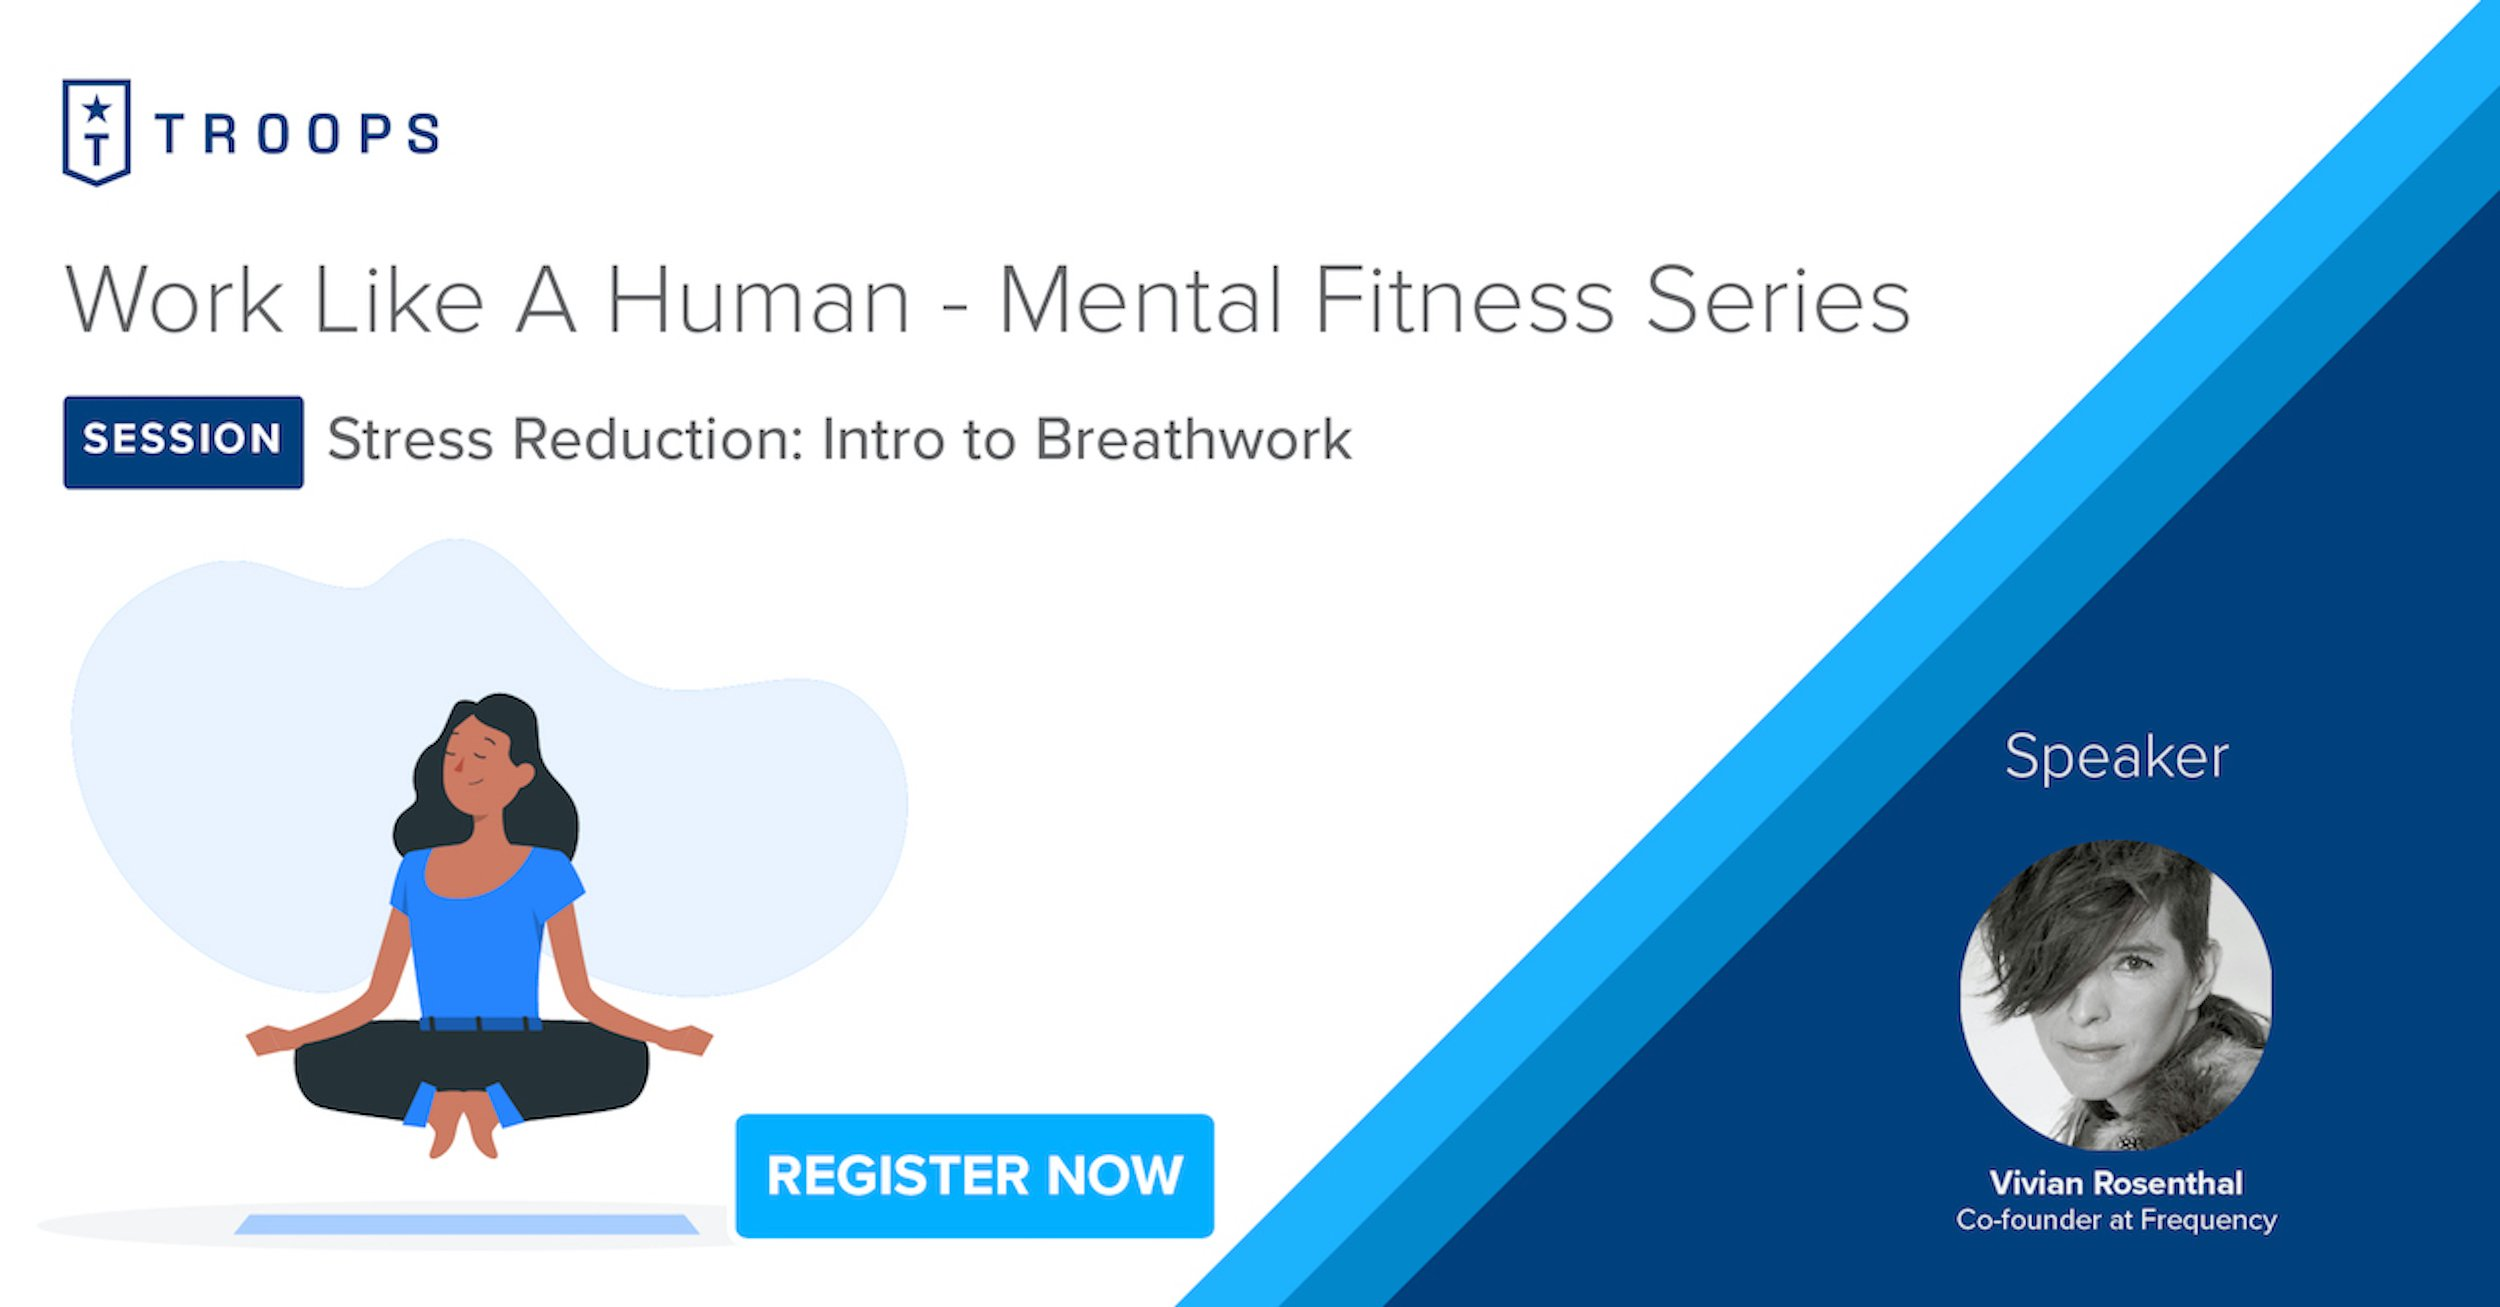 Mental fitness: New webinar series to help you reduce stress, stay focused & productive